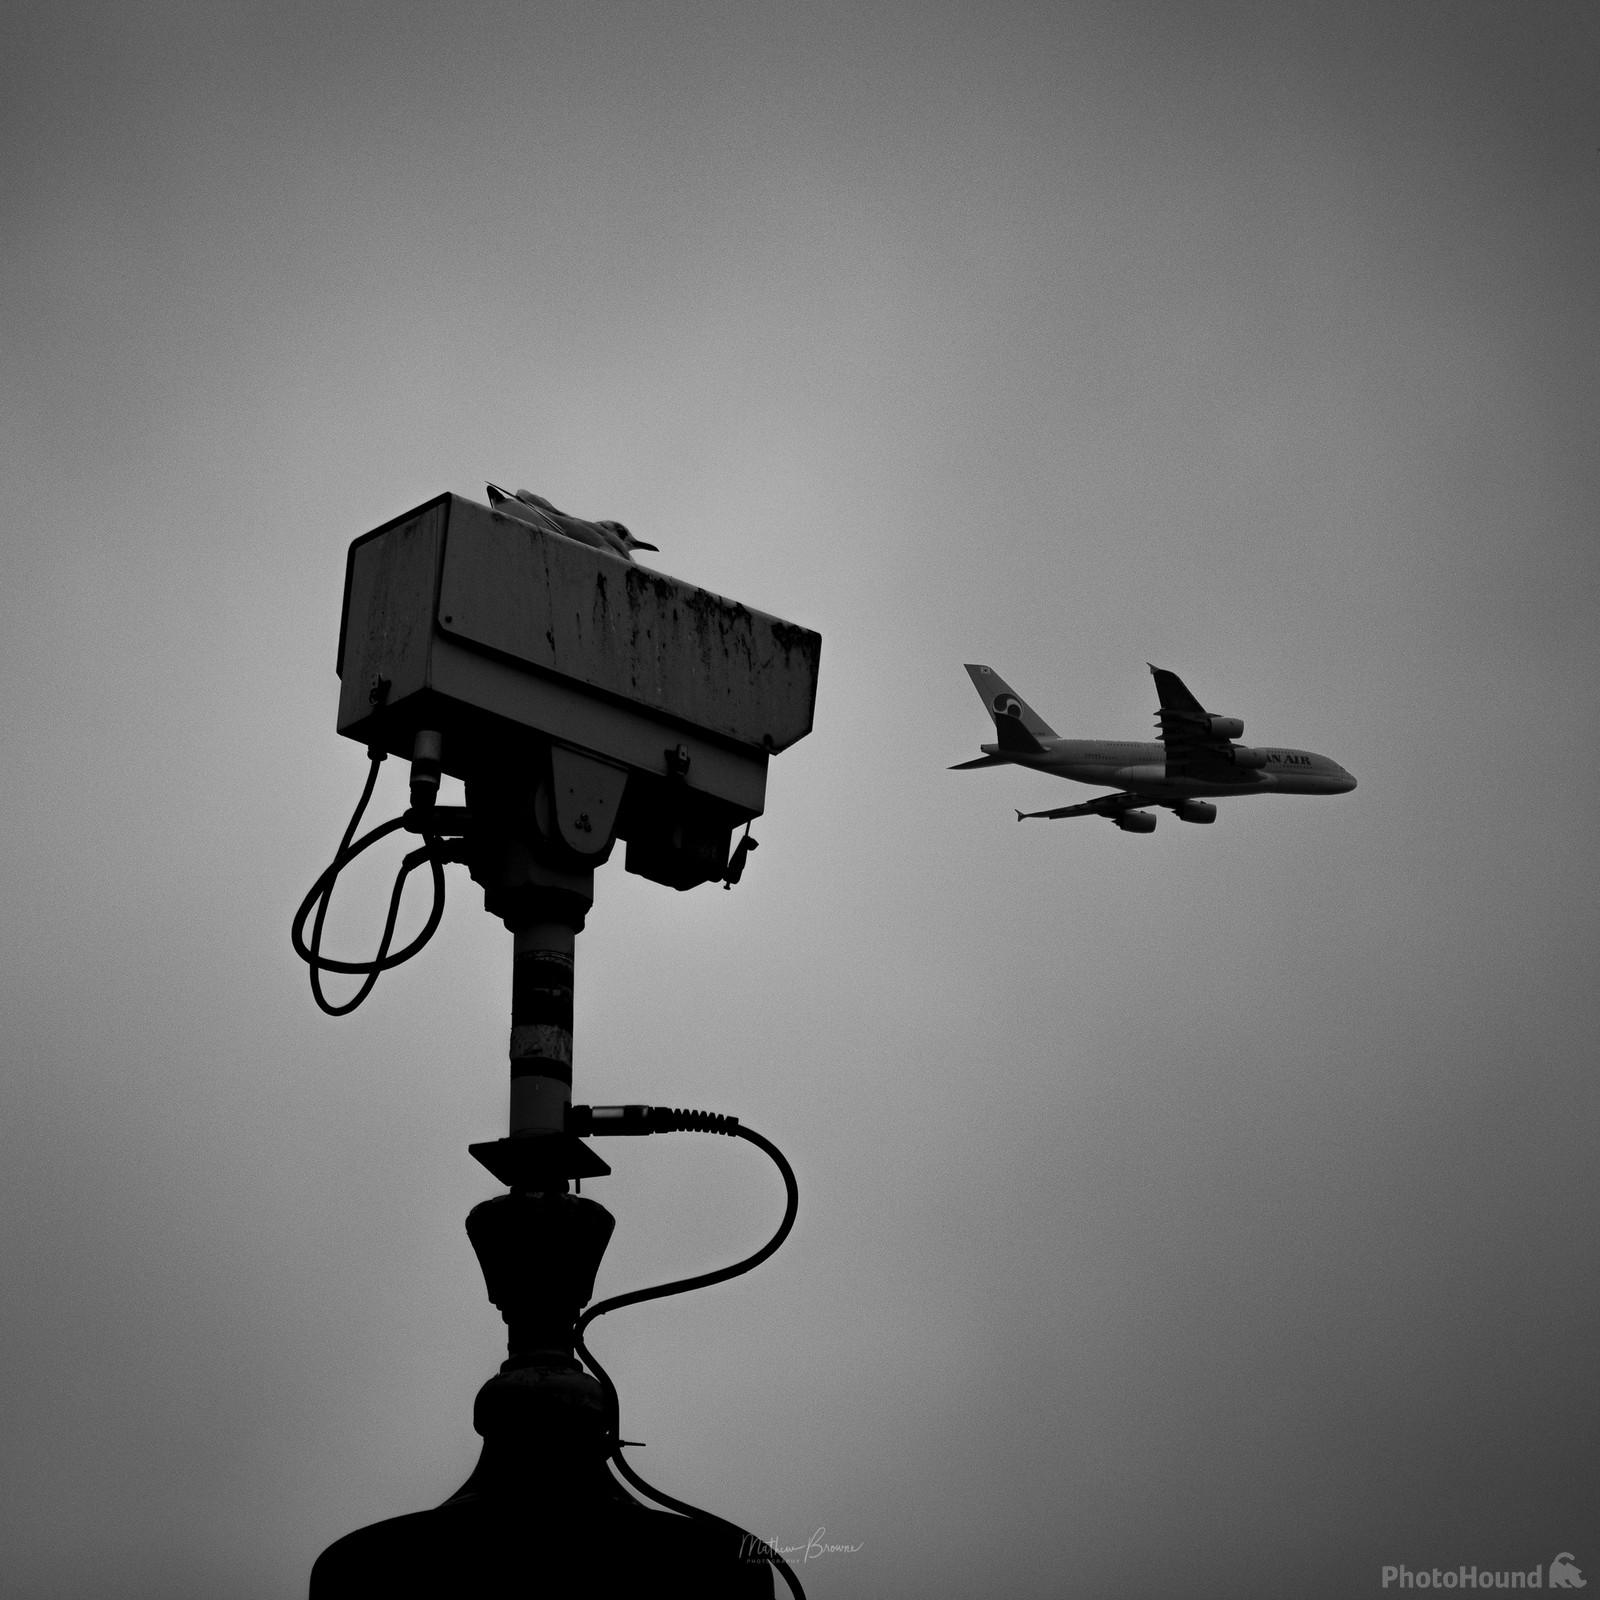 A telephoto lens of the Square's CCTV cameras and a passing plane